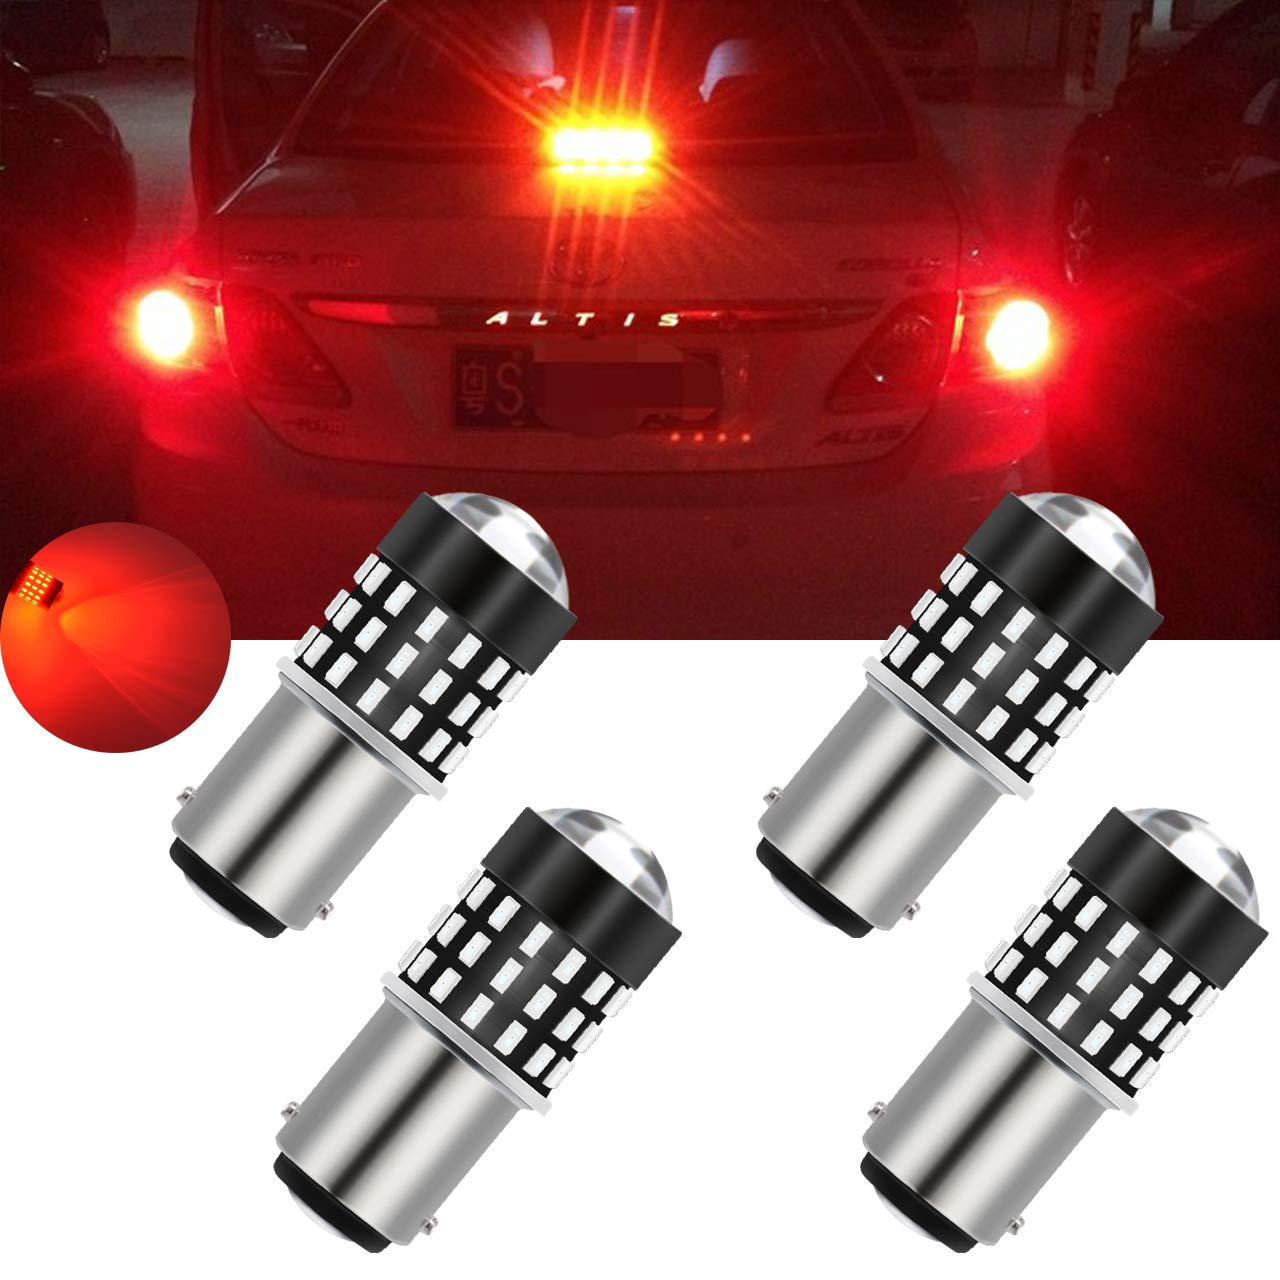 TUINCYN 7443 7440 T20 992 7444NA LED Bulbs White Super Bright 3014 54-EX Chipsets Backup Reverse Light, Parking Light, Daytime Running Light, Rear Trun Signals Light, Tail Light(2-Pack)